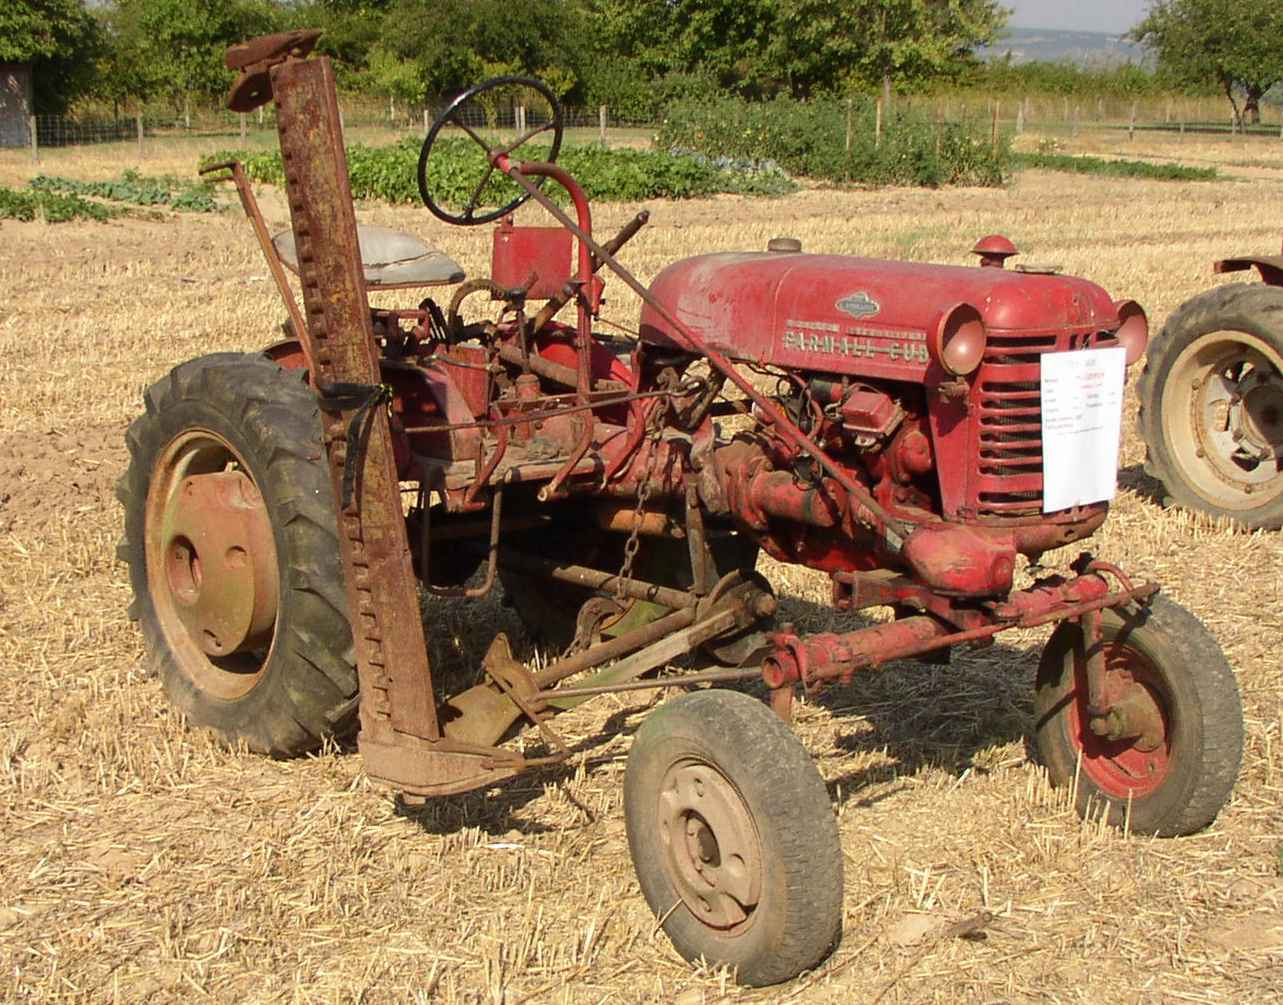 Farmall Cars 2019-2018 Reviews: Photos, Video, Specs, Price